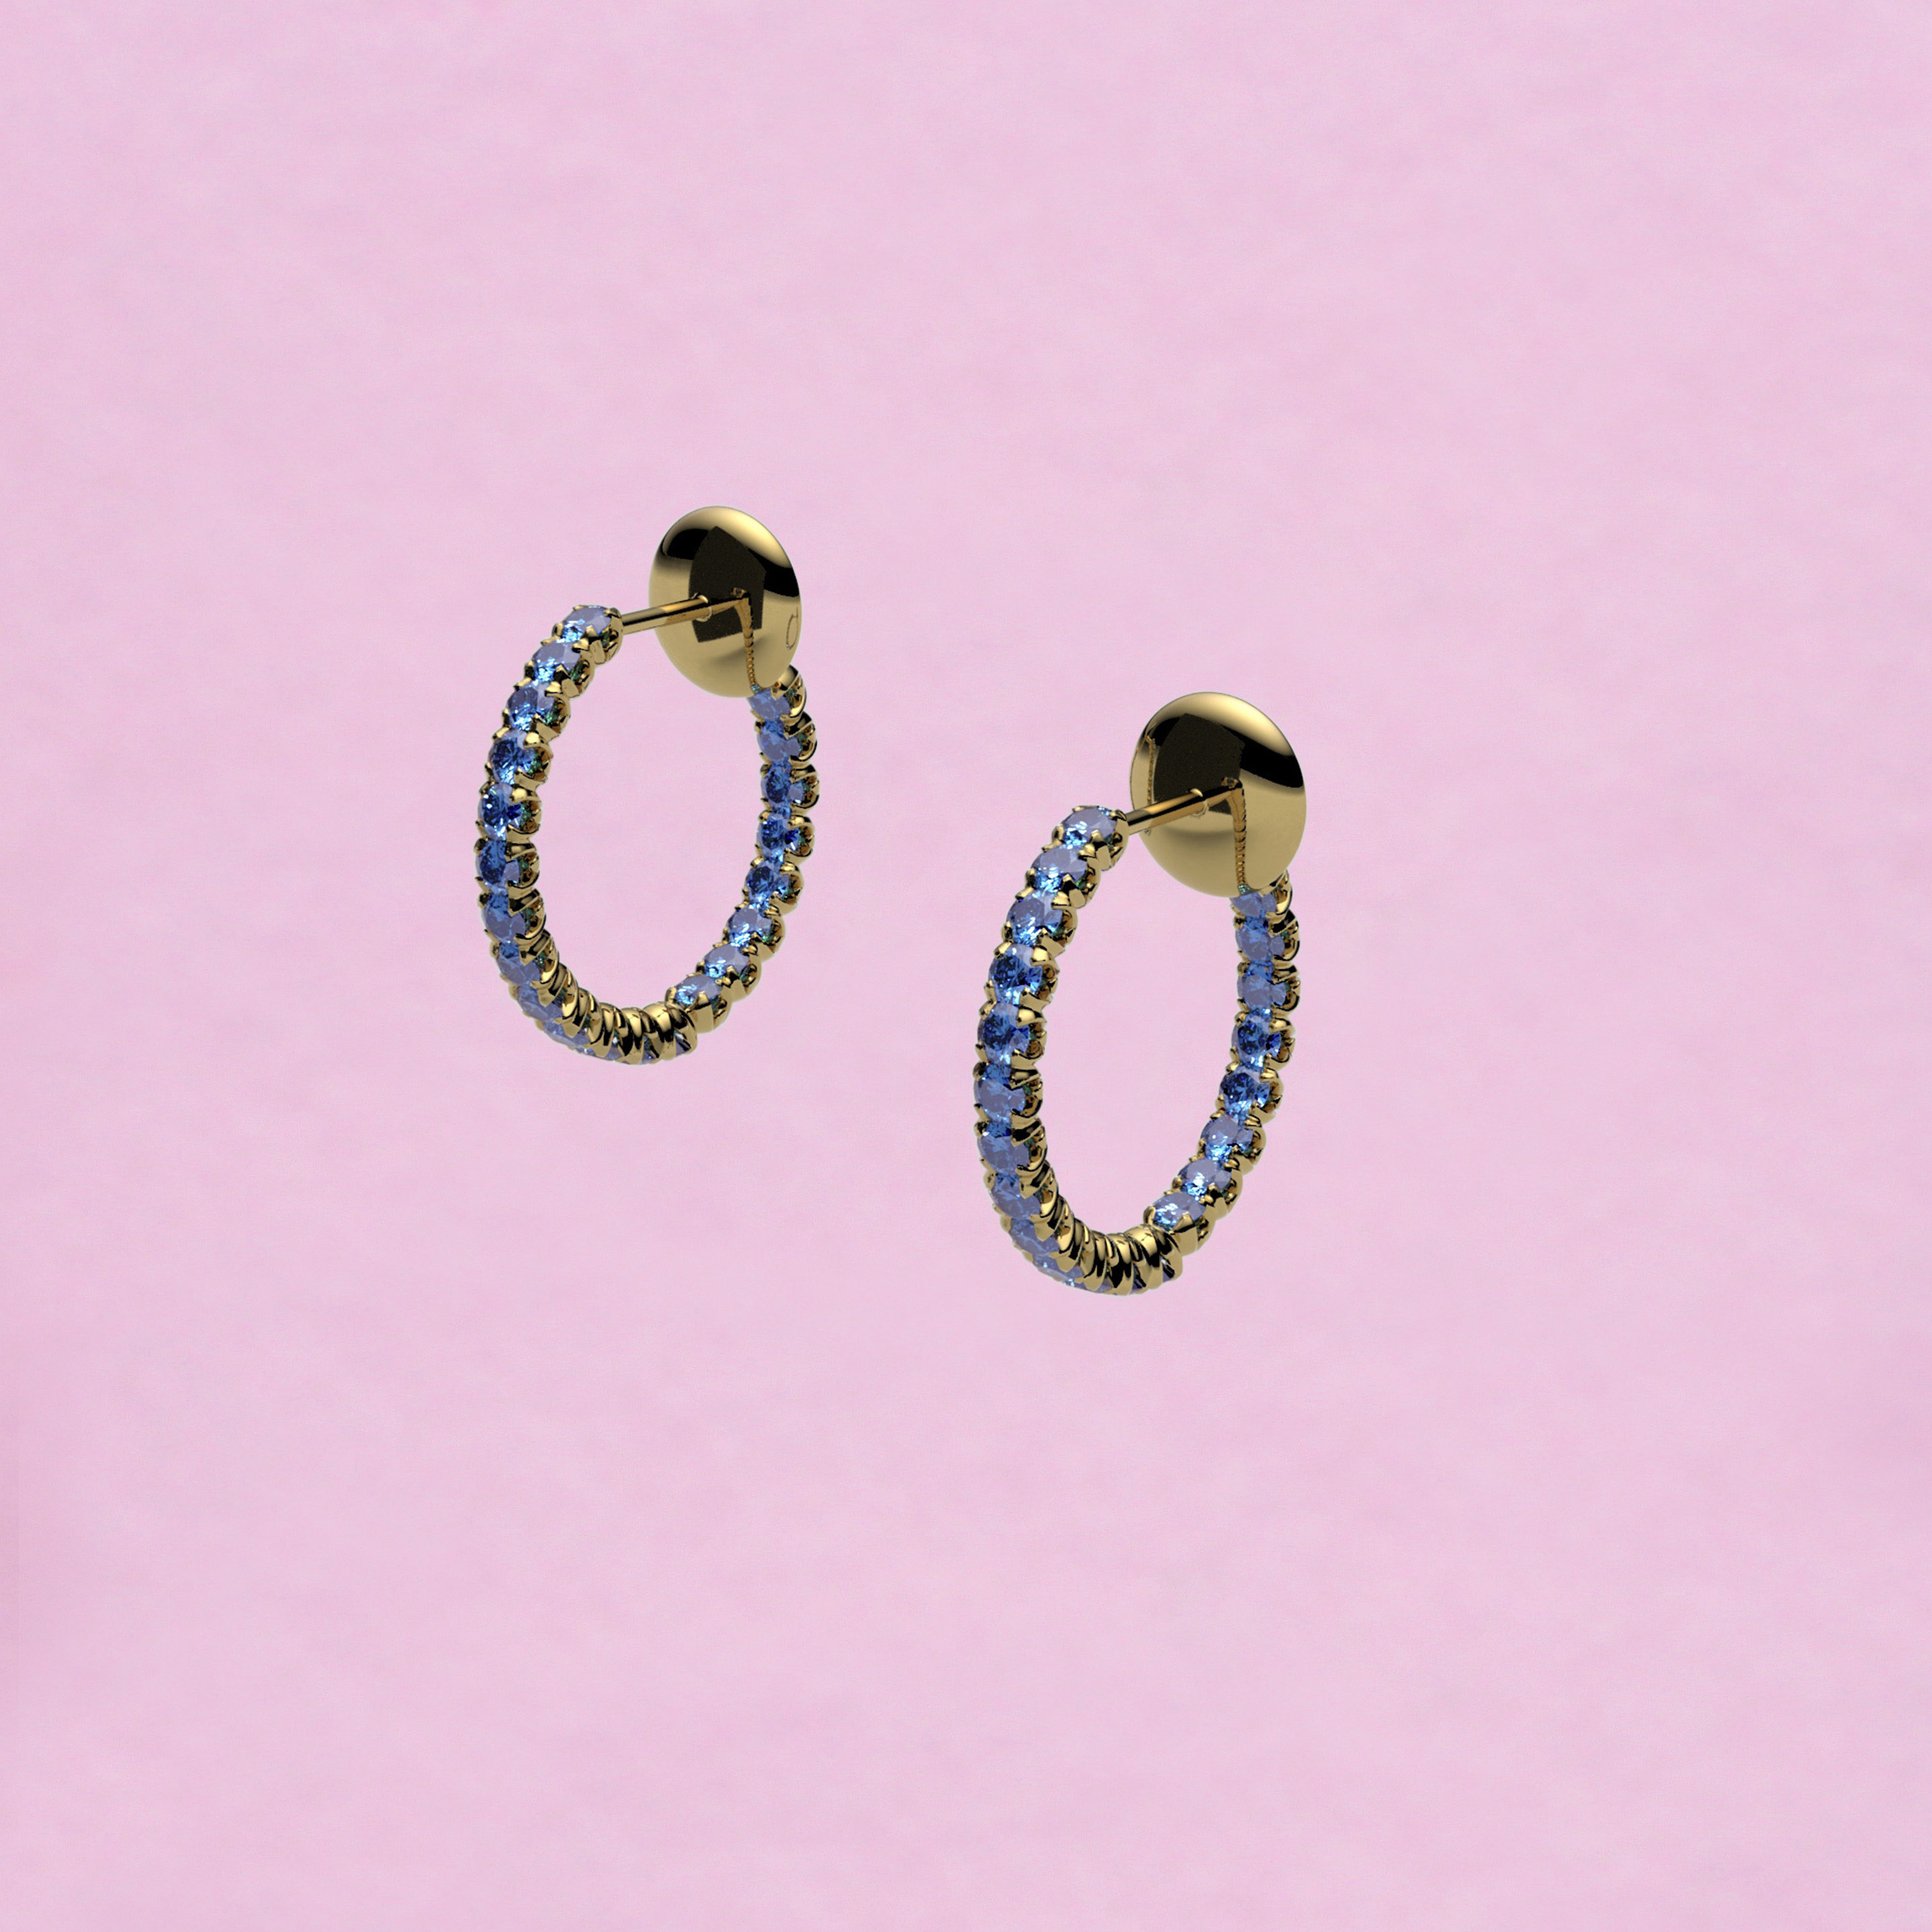 blossom hoop earrings – cornflower sapphire and 18k yellow gold